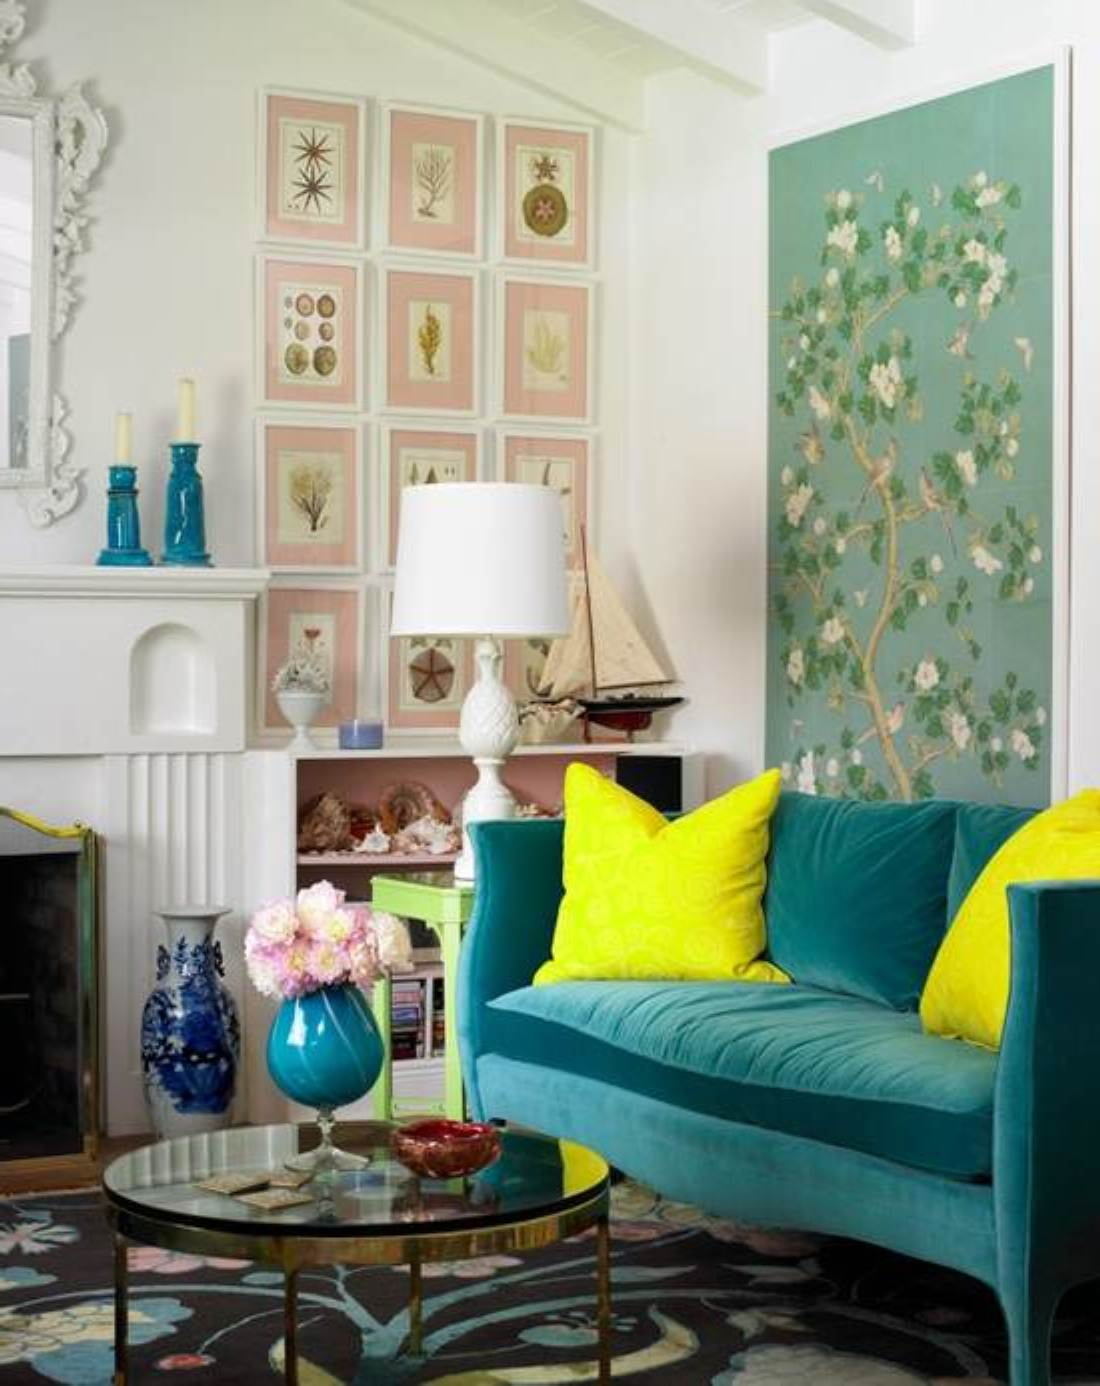 Some Easy Rules of Small Space Decorating